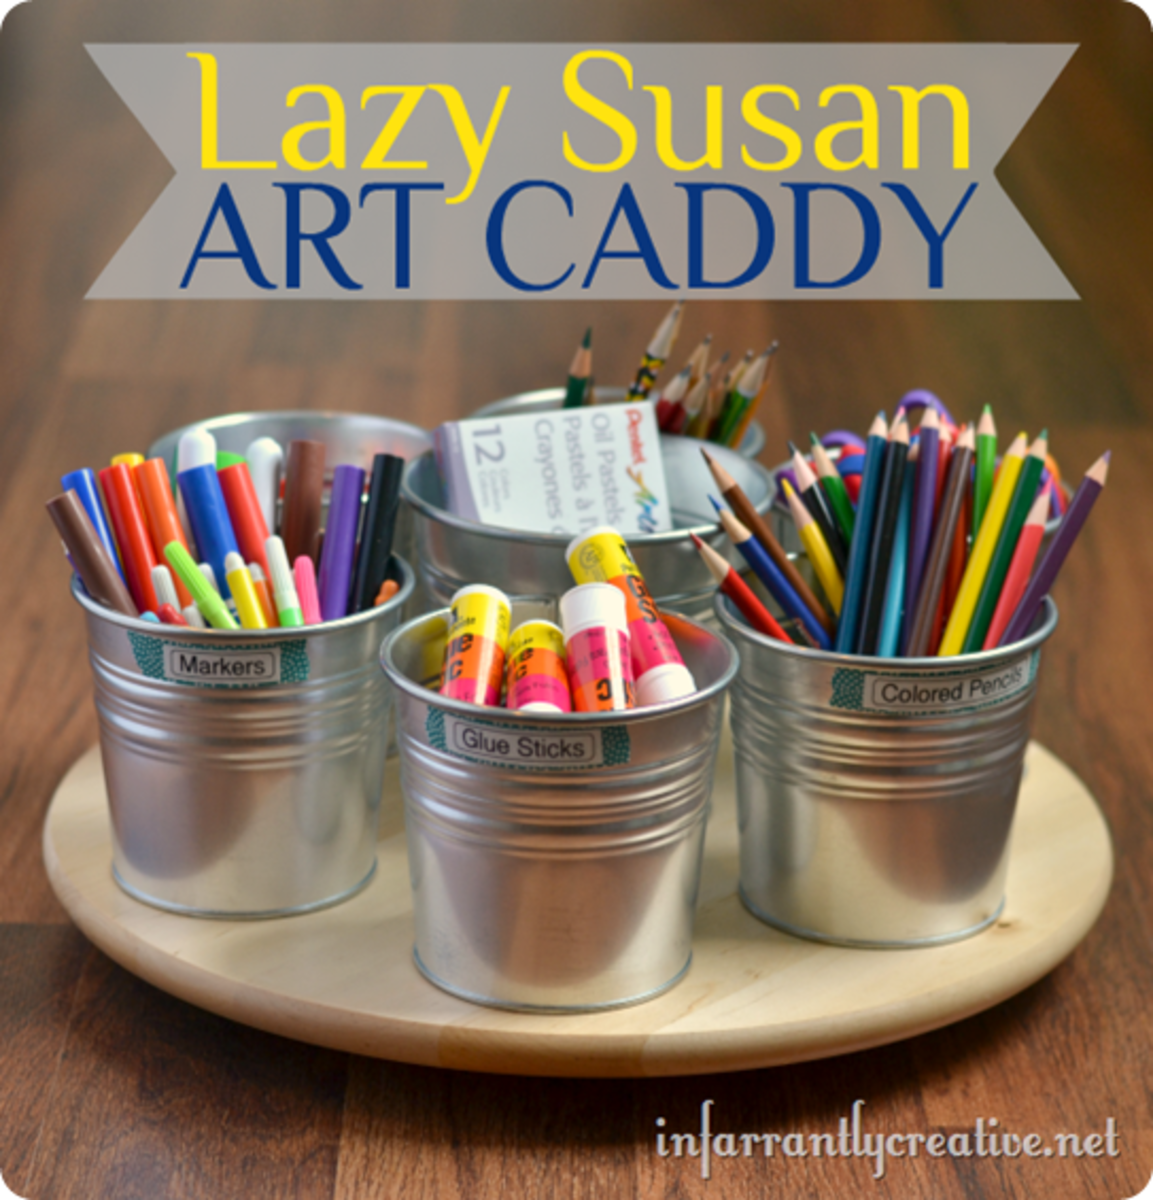 Make this art caddy on a lazy susan